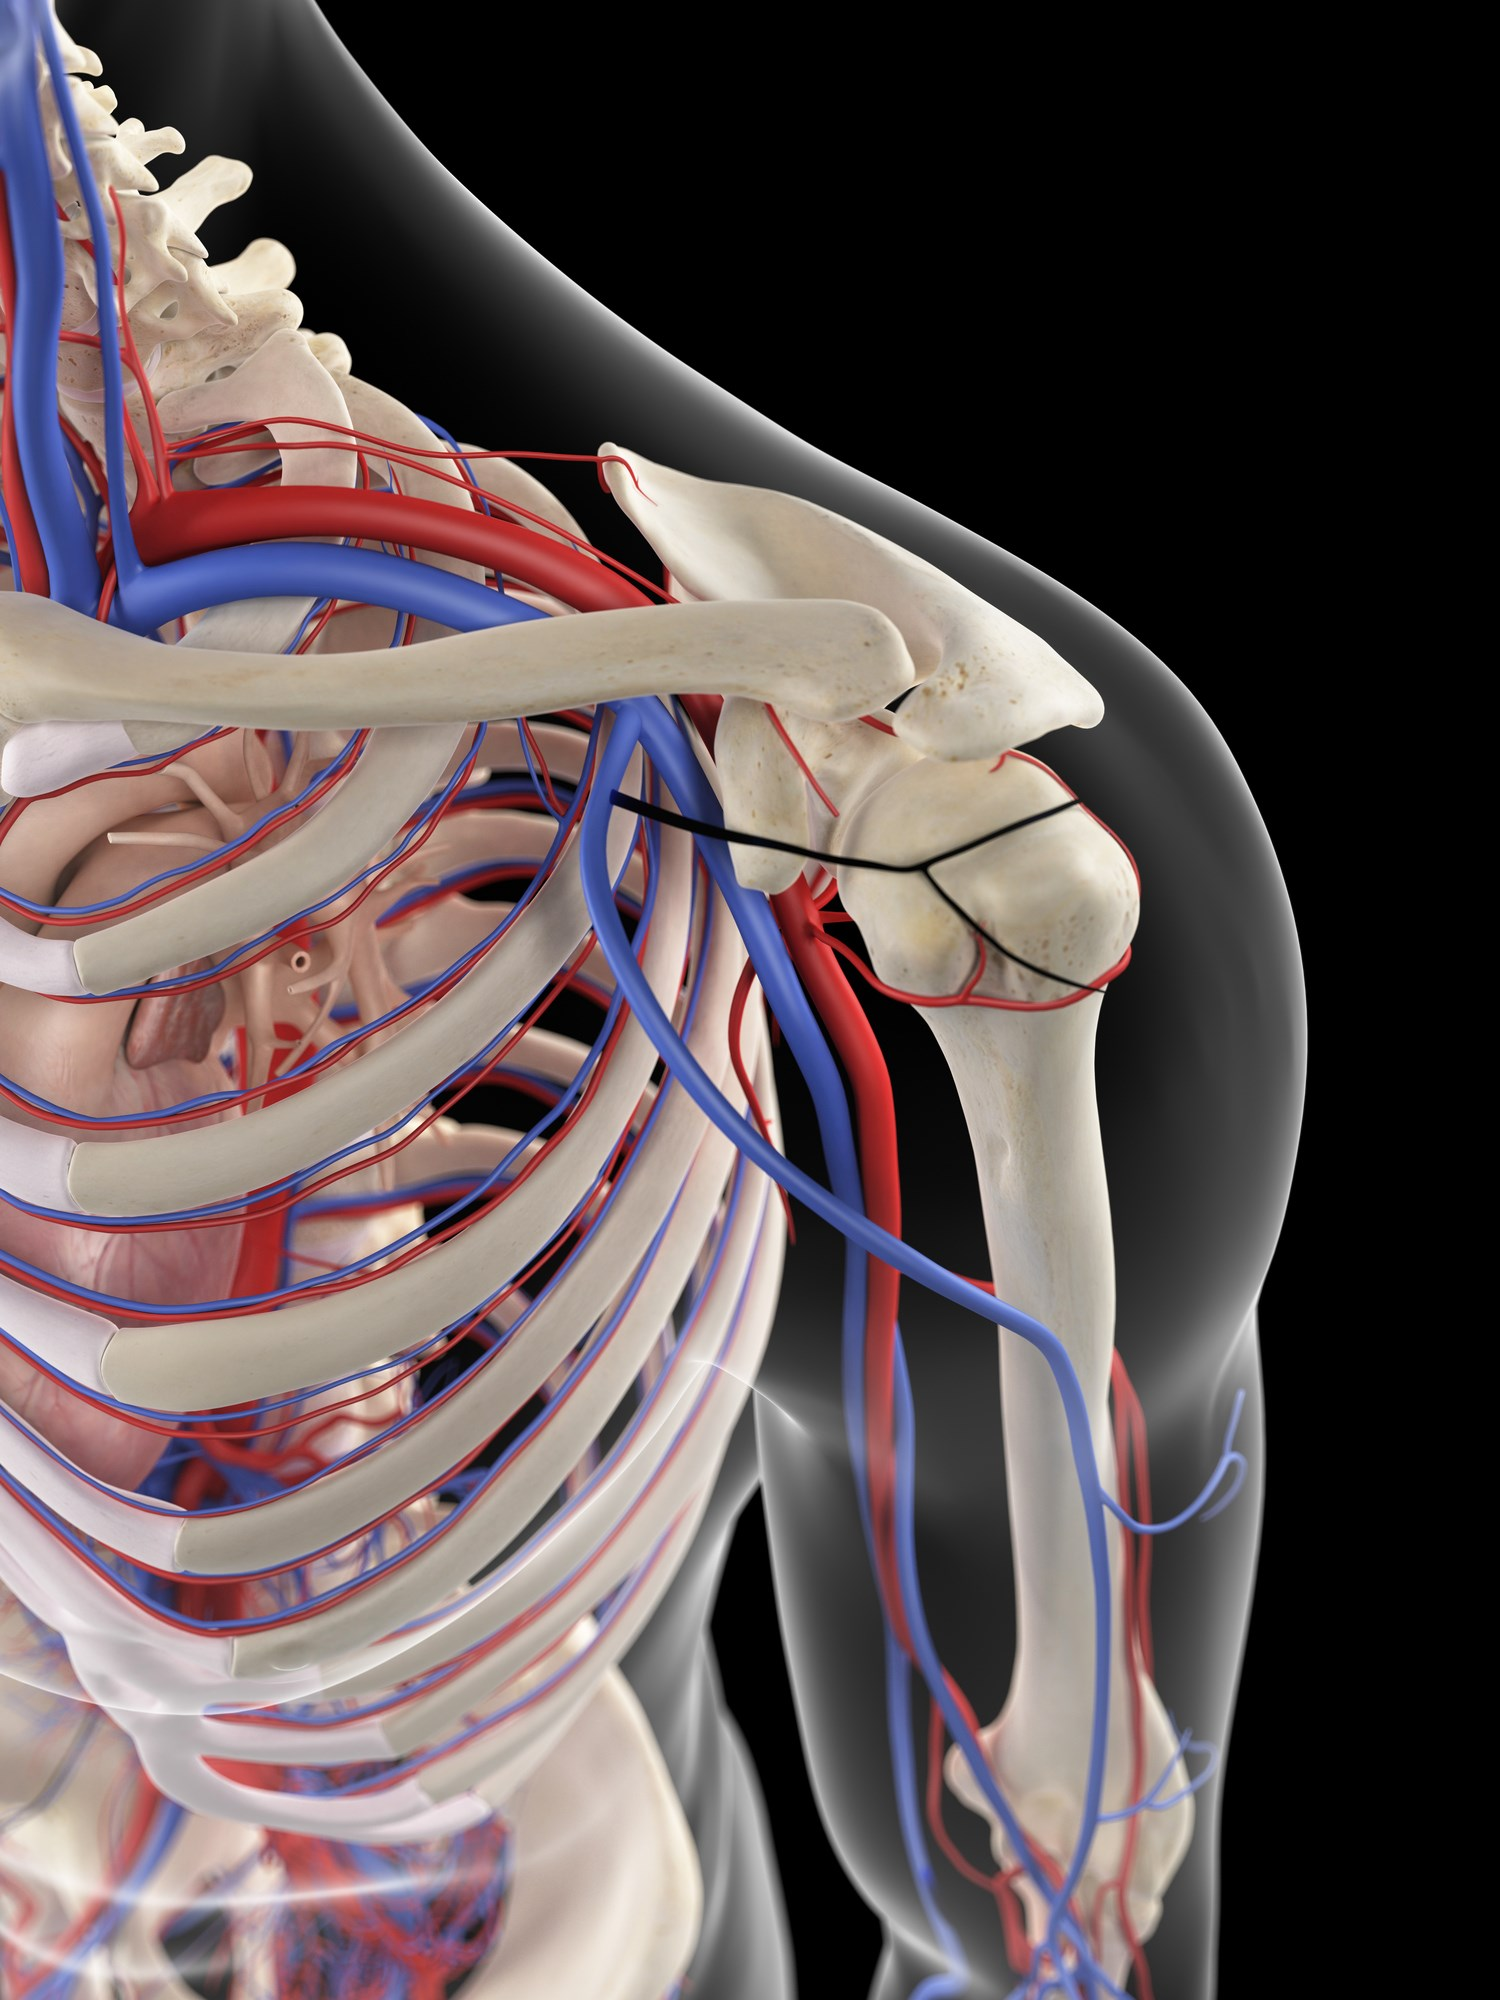 The thoracic outlet is defined by an area through which the subclavian vein, subclavian artery, and brachial plexus all emerge as a neurovascular bundle.